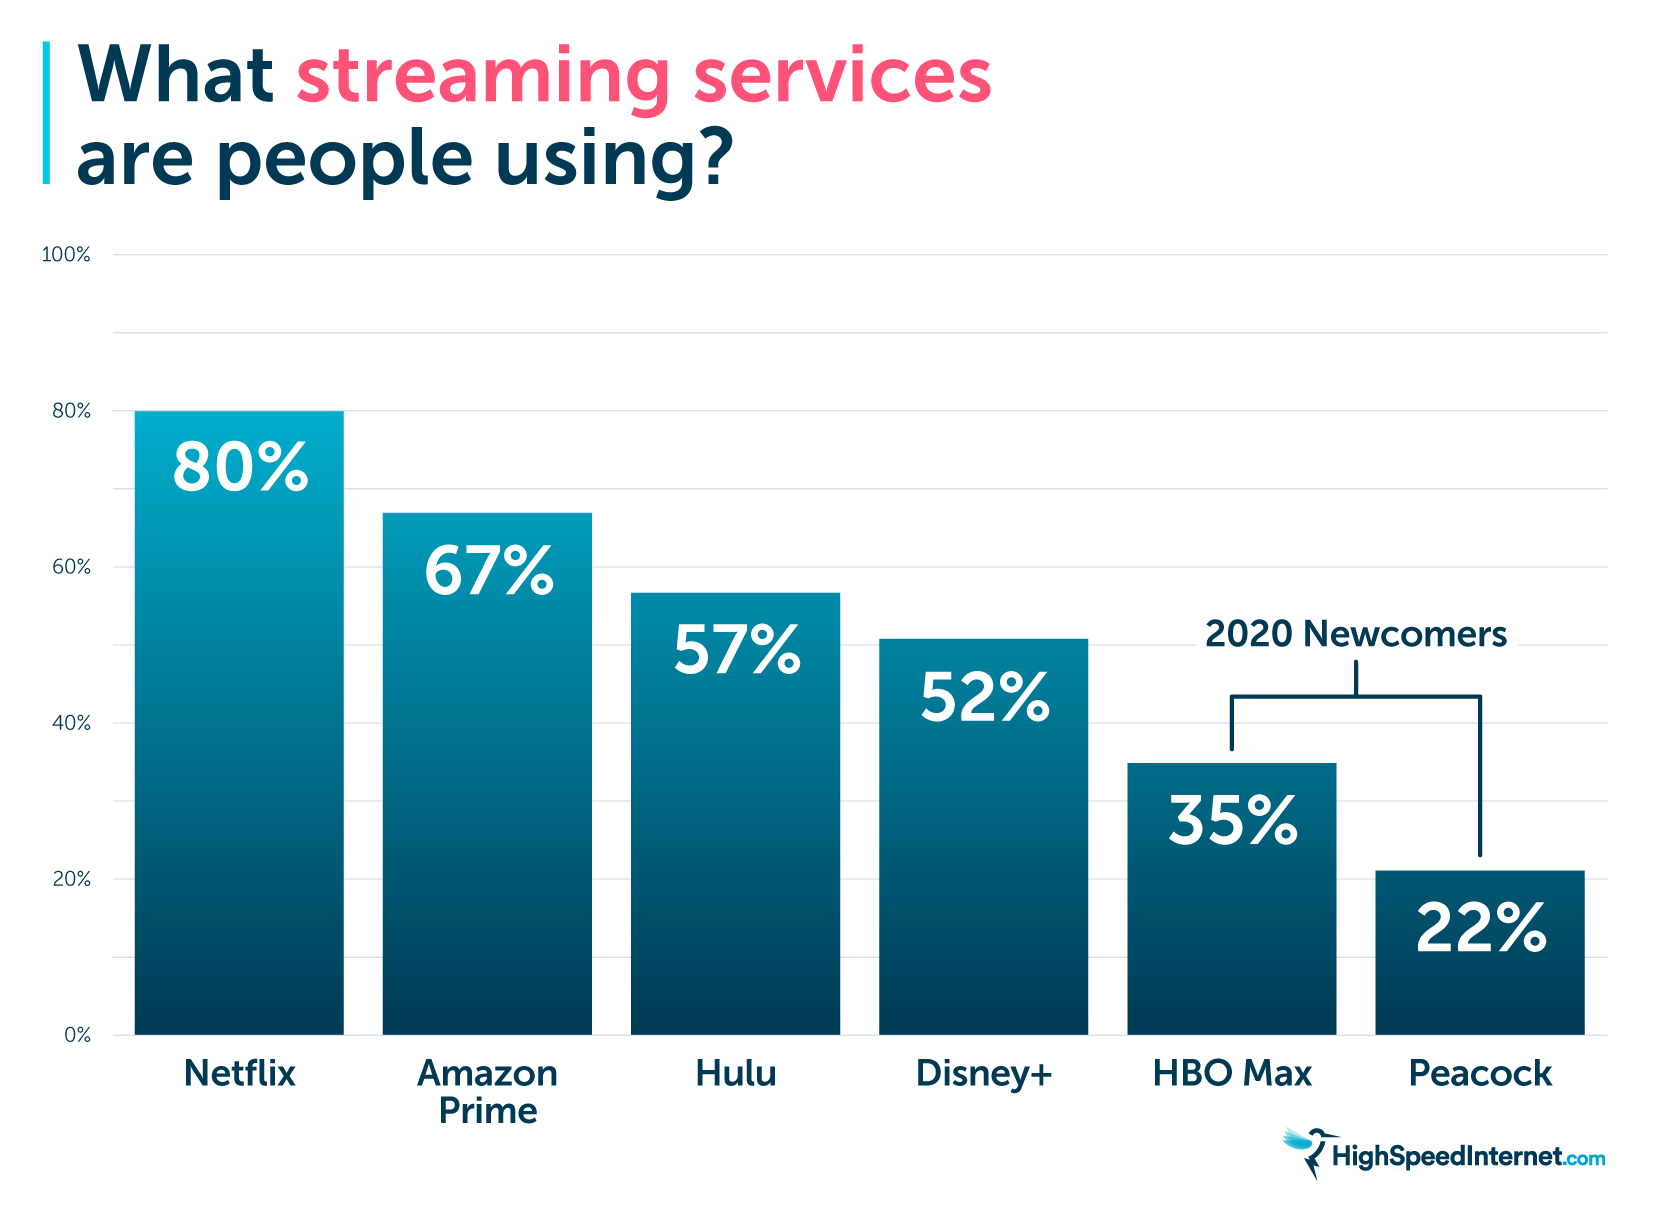 What streaming services are people using?